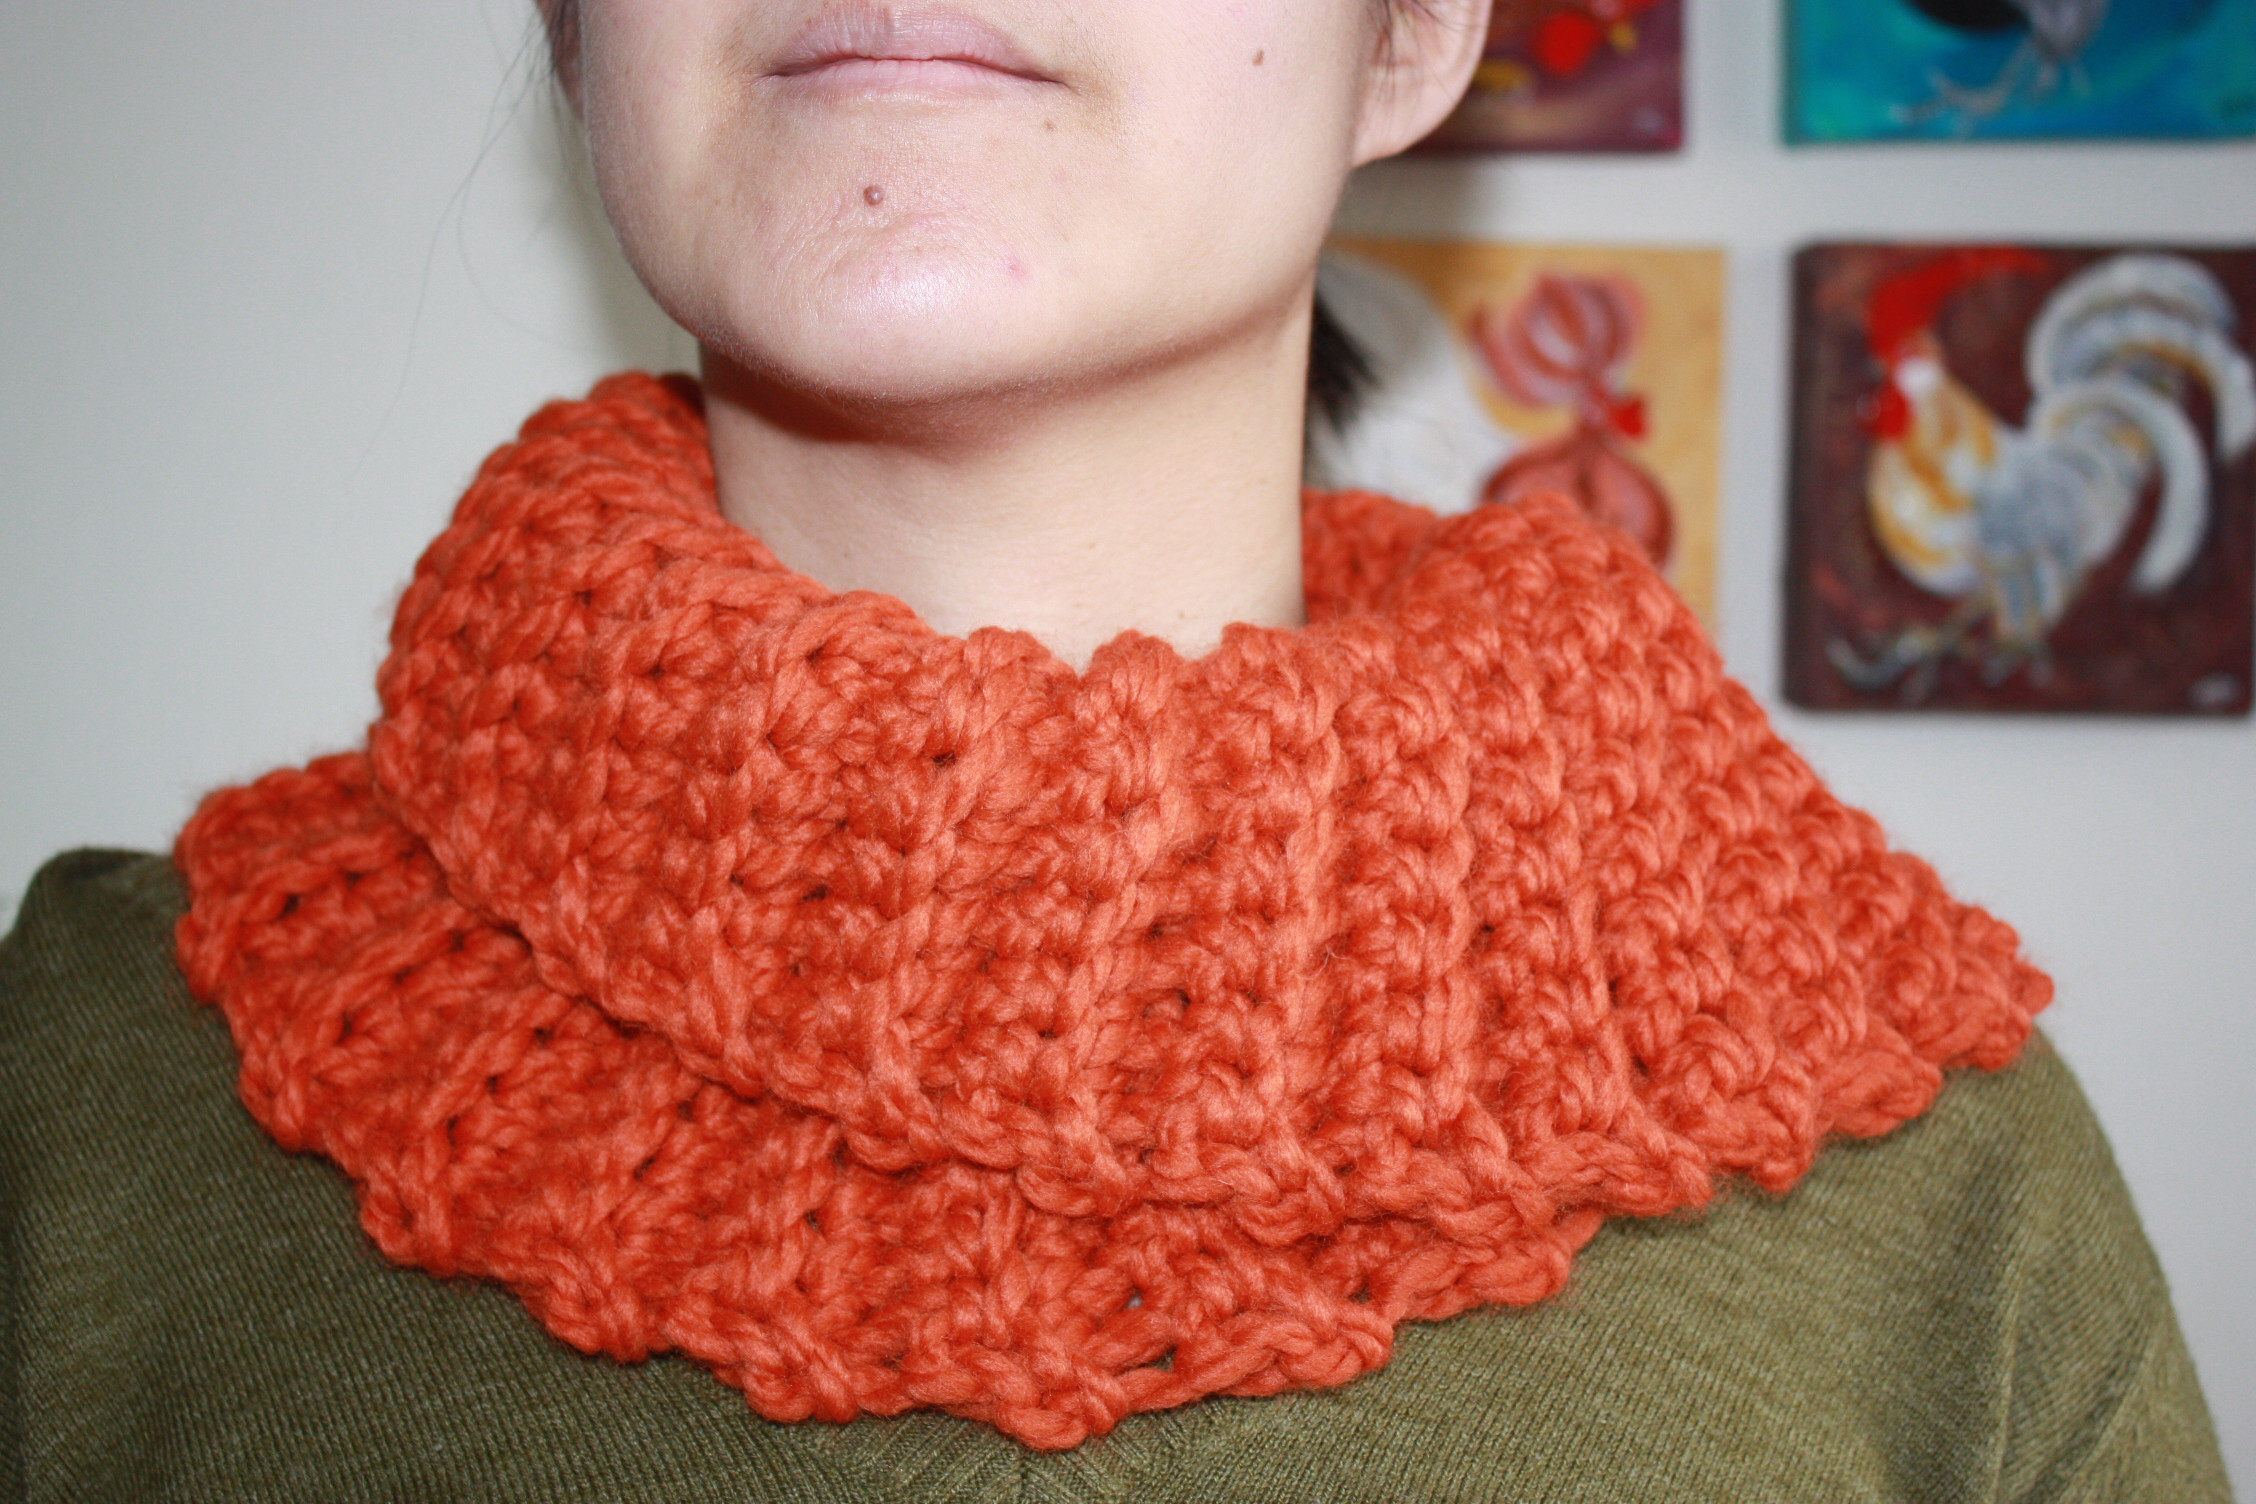 Crochet Neck Warmer Awesome Crochet Patterns for Neck Warmers Dancox for Of Brilliant 41 Pictures Crochet Neck Warmer